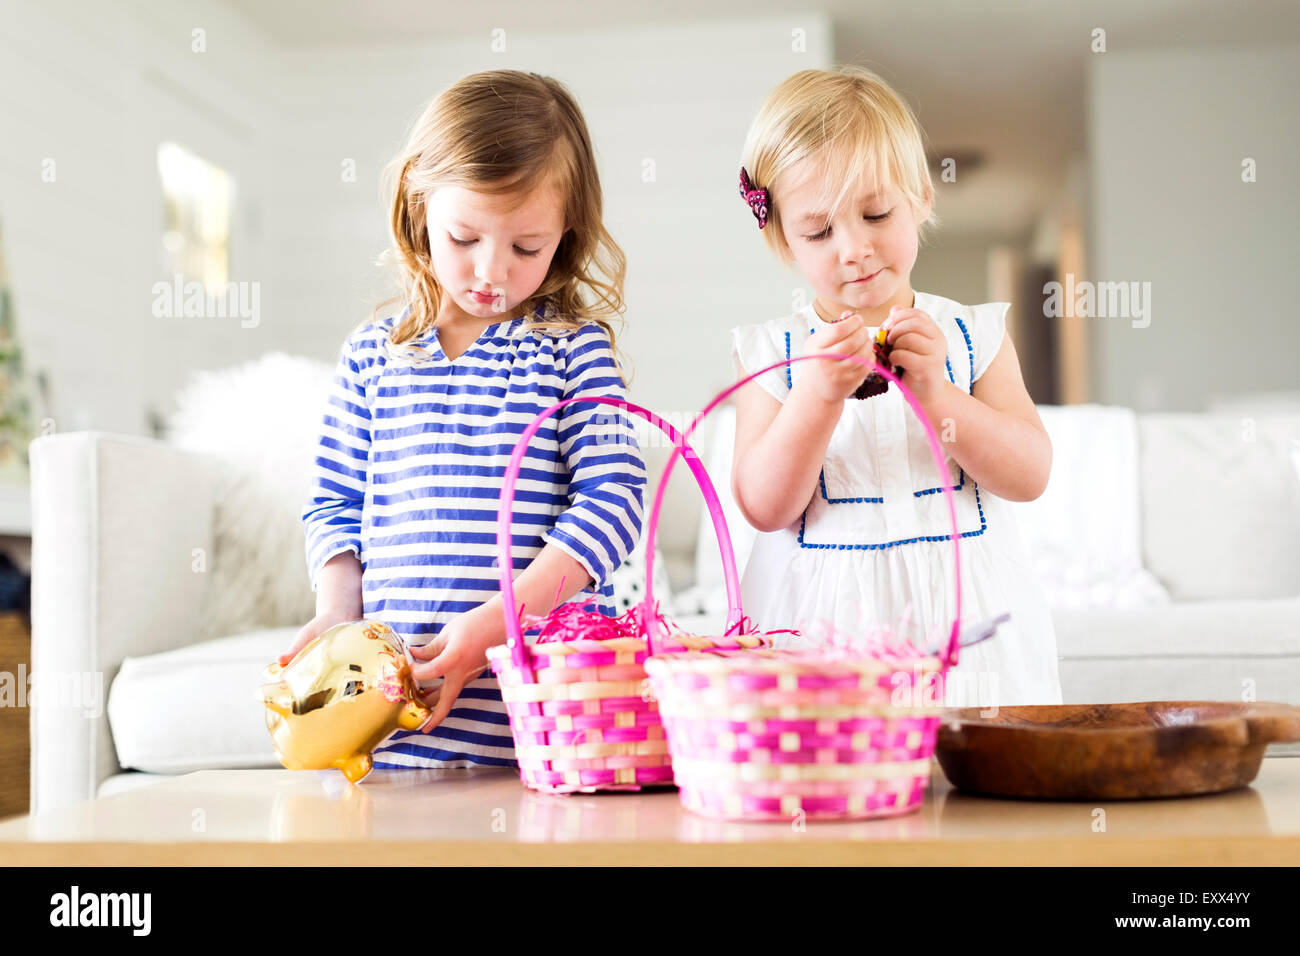 Girls (2-3, 4-5) opening candies - Stock Image